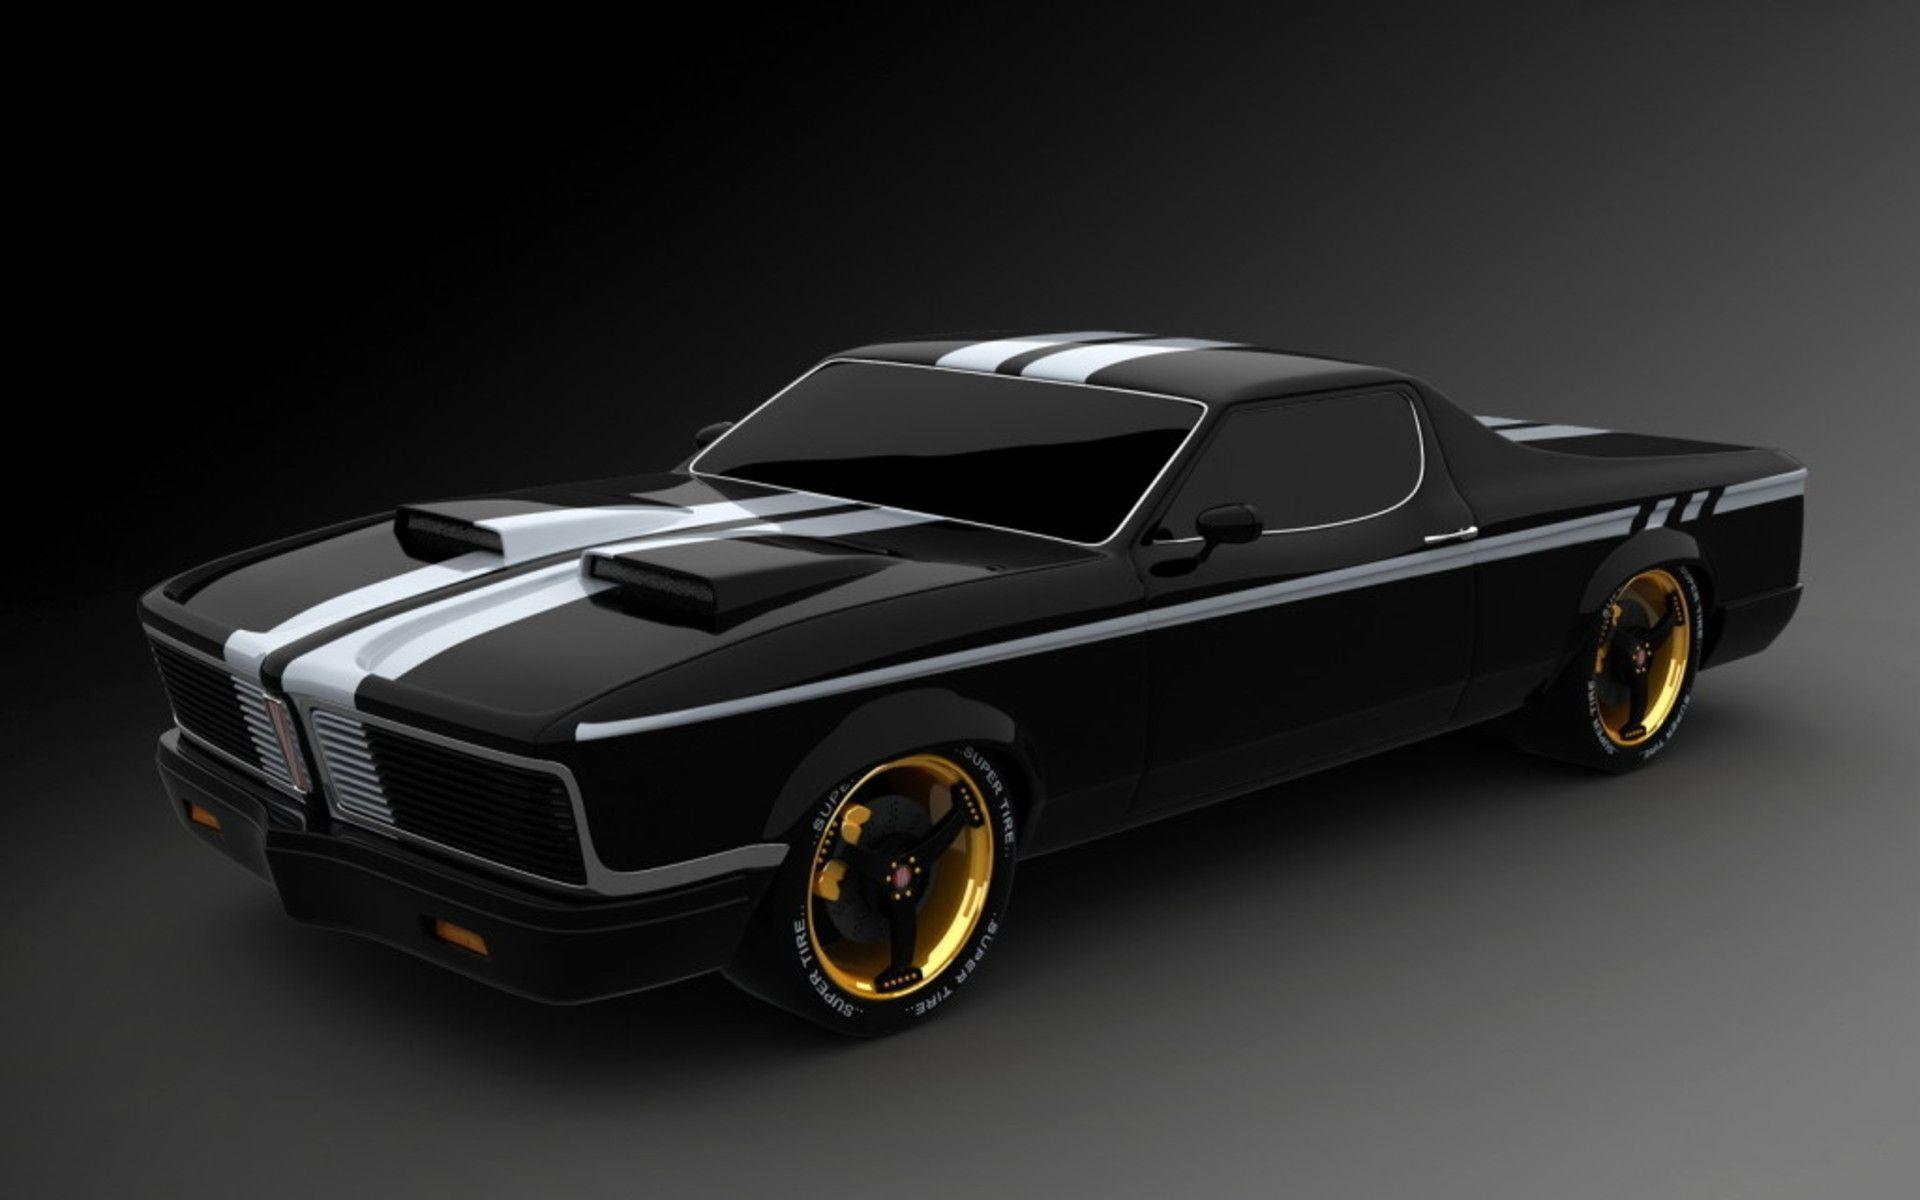 new wallpapers muscle car - photo #38